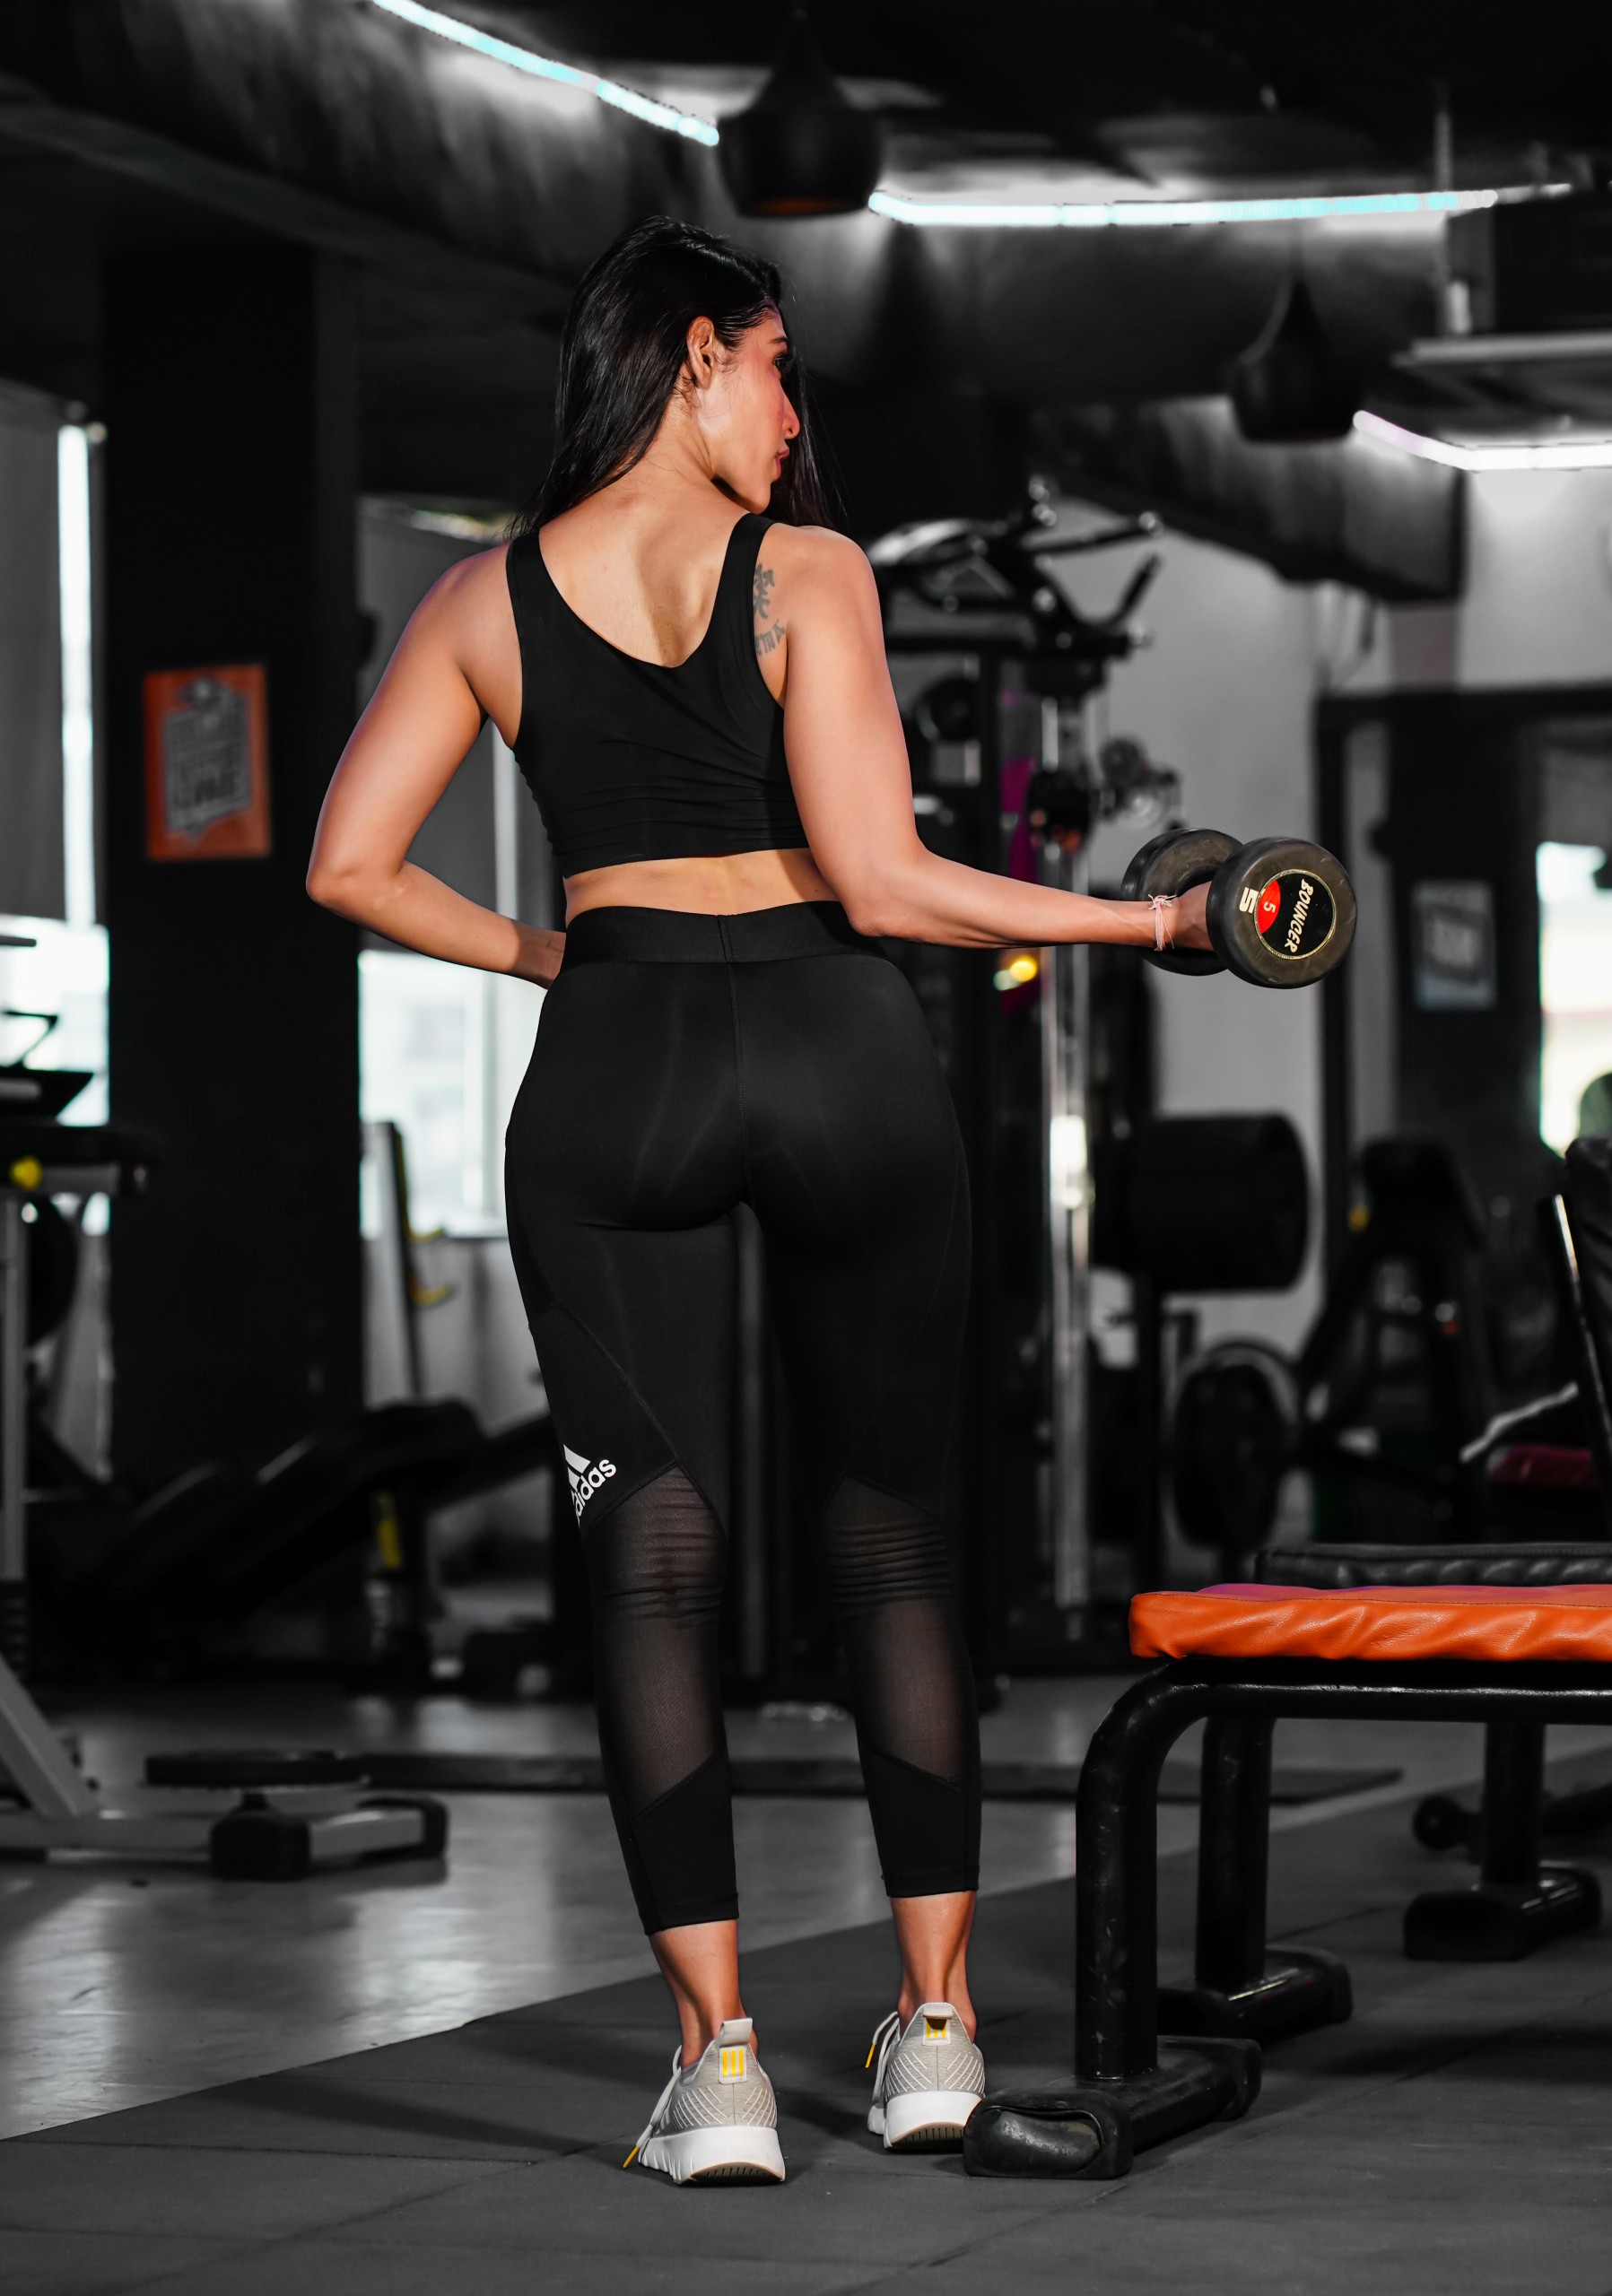 Woman back pose with dumbbells exercise